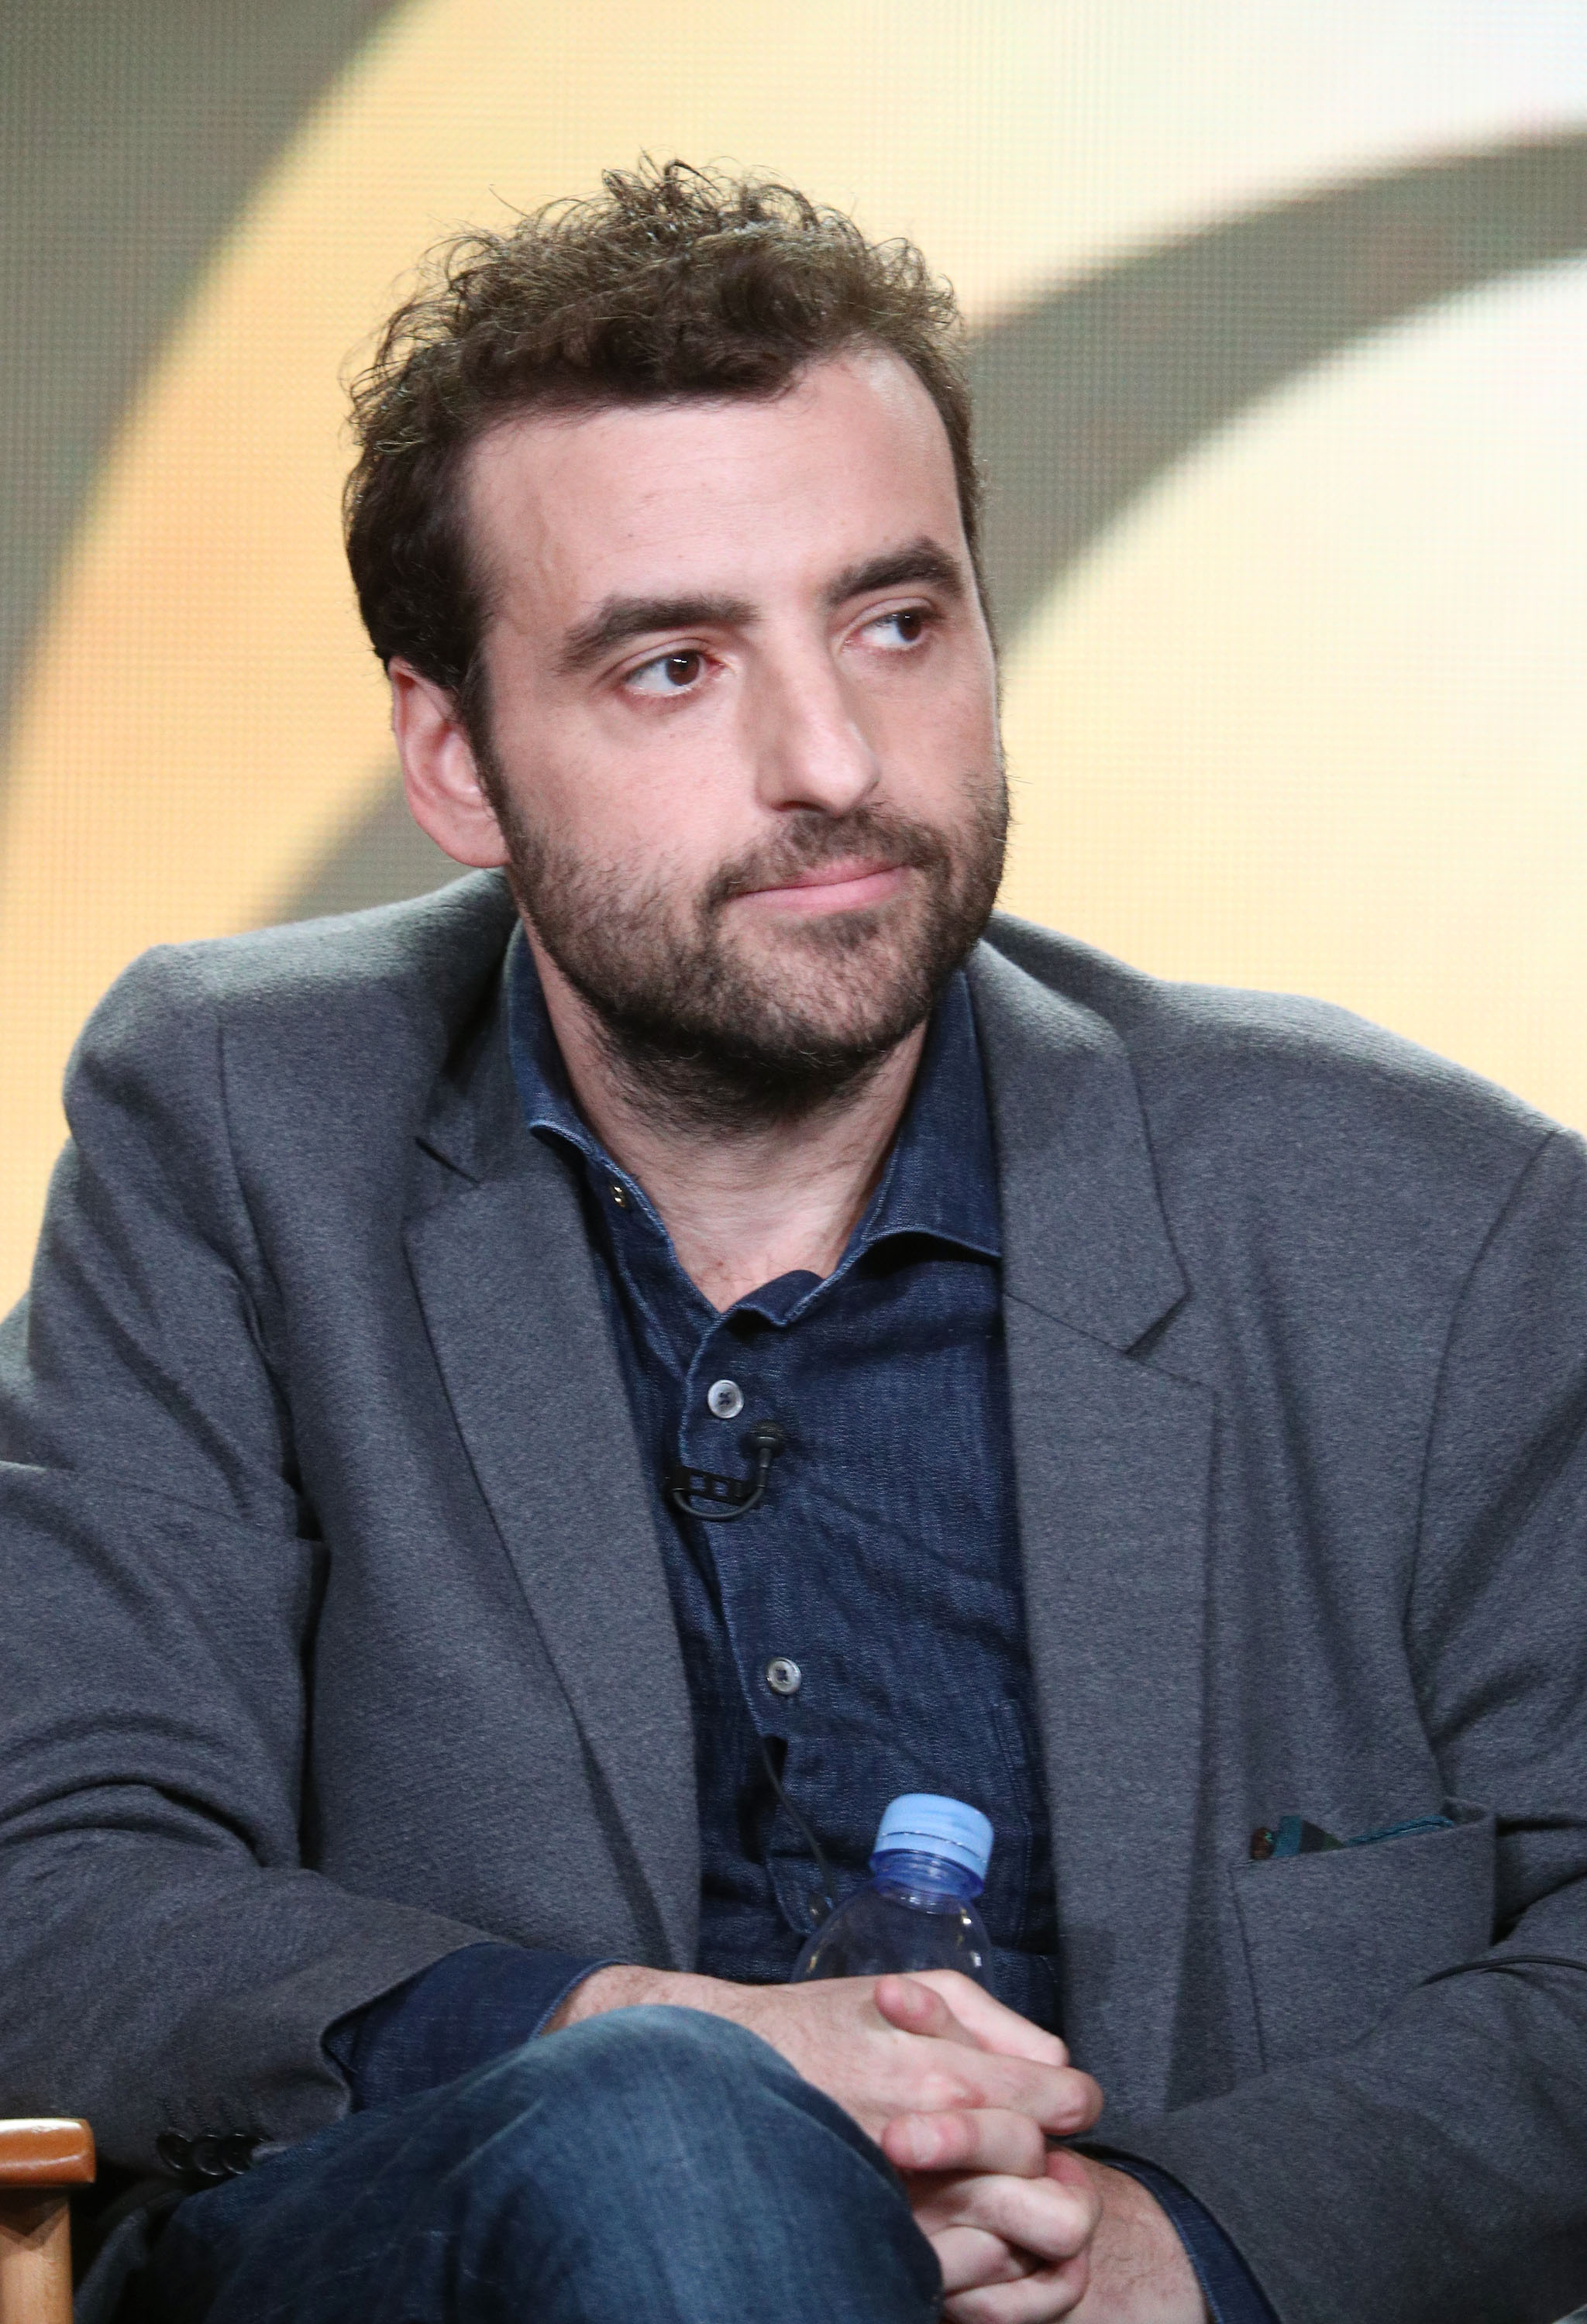 Actor David Krumholtz of the television show Living Biblically speaks onstage during the CBS/Showtime portion of the 2018 Winter Television Critics Association Press Tour at The Langham Huntington, Pasadena on January 6, 2018 in Pasadena, California. (Photo by Frederick M. Brown/Getty Images)